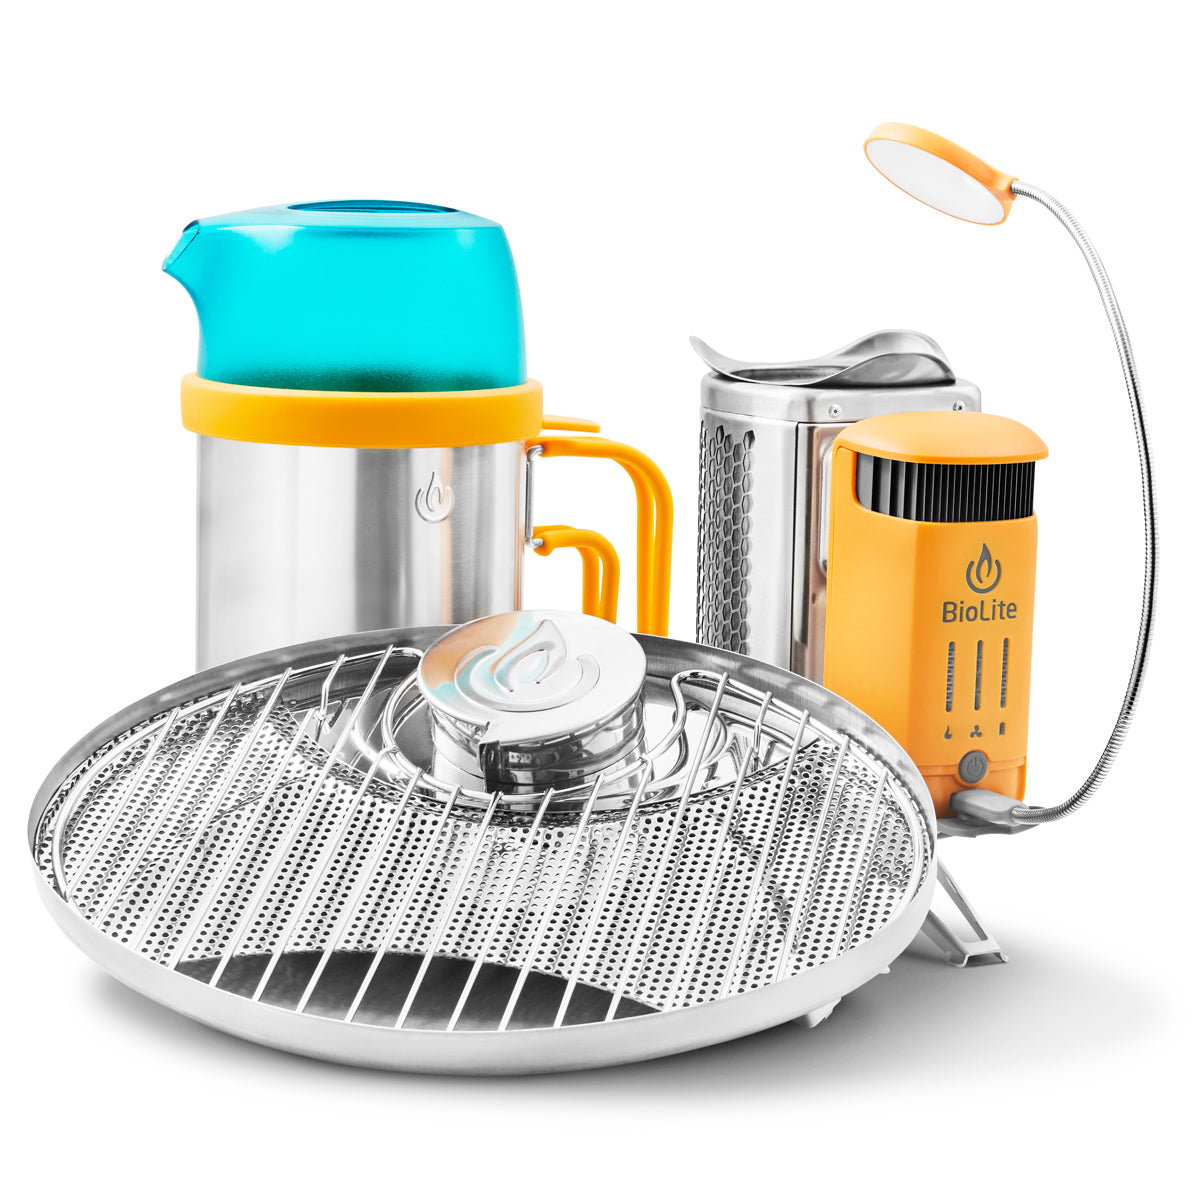 Campstove 2, Flexlight, Portable Grill, Kettlepot Survival Gear Combo By Biolite